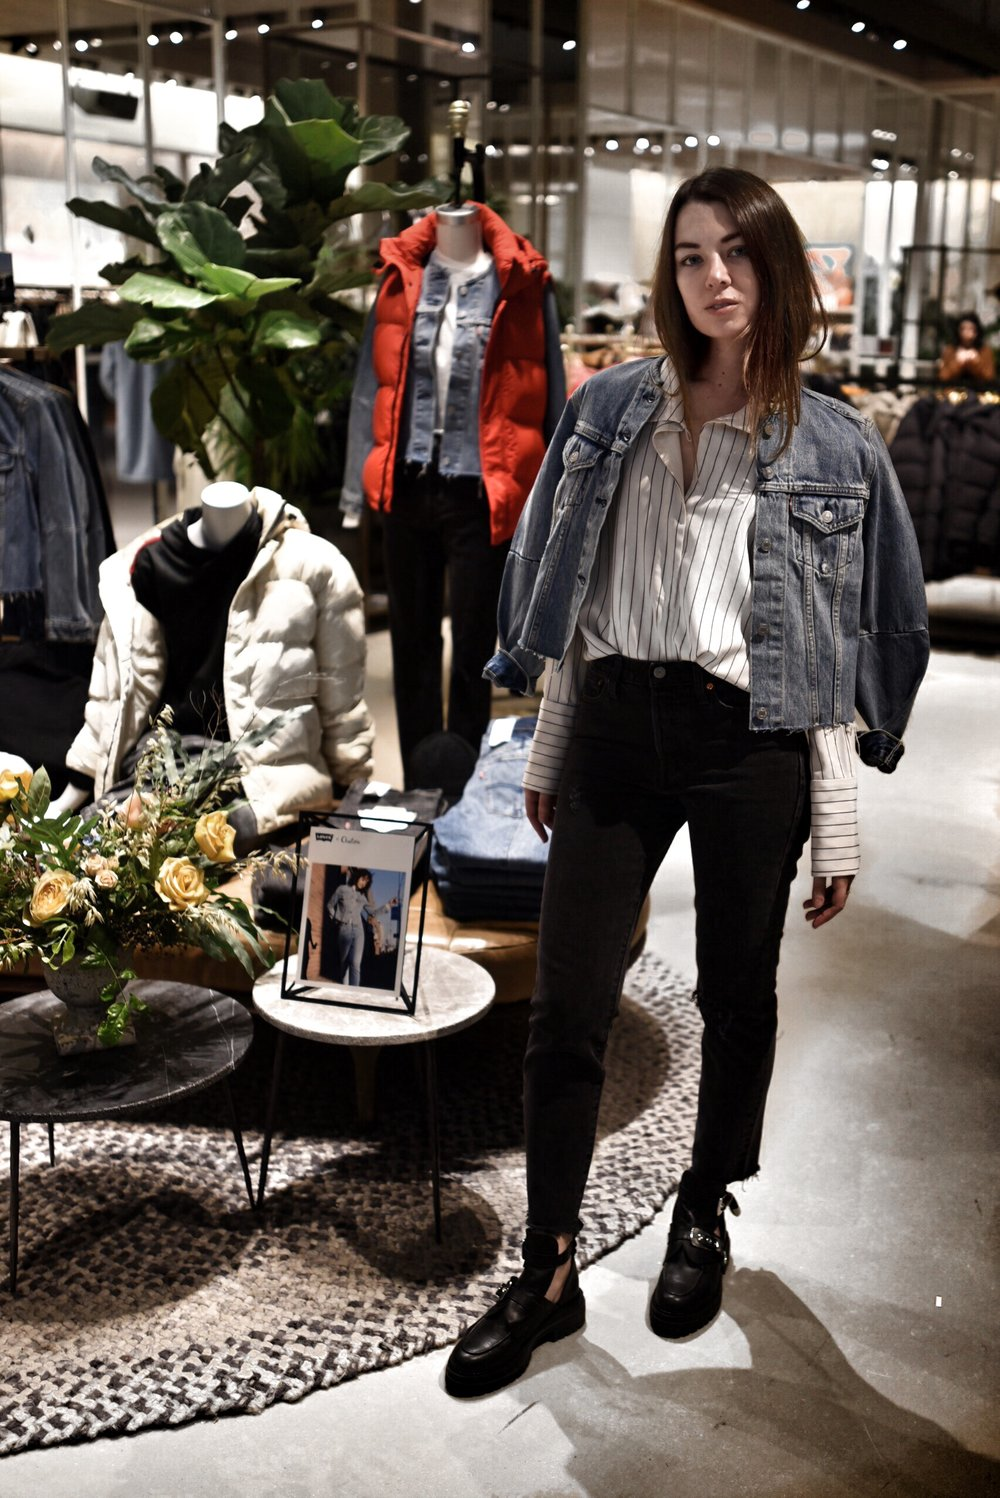 Aritzia Teamed Up with Levi's for a Denim Collection. - And I was over at Yorkdale Shopping Centre at the Aritzia store to celebrate the launch of the new collaboration! Did you catch my takeover on Aritzia's Instagram stories yesterday? With two styles and four exclusive washes of vintage inspired Levi's denim, I couldn't help but try them all on. Jeans are my go-to everyday. So I'm all about this collab. And today I took my favourite new jeans to the streets. I'm wearing the Wedgie style in 'Forever Mine'. They are high waisted, and the perfect faded black wash. Obsessed! You can shop the collection online and in Aritzia stores!